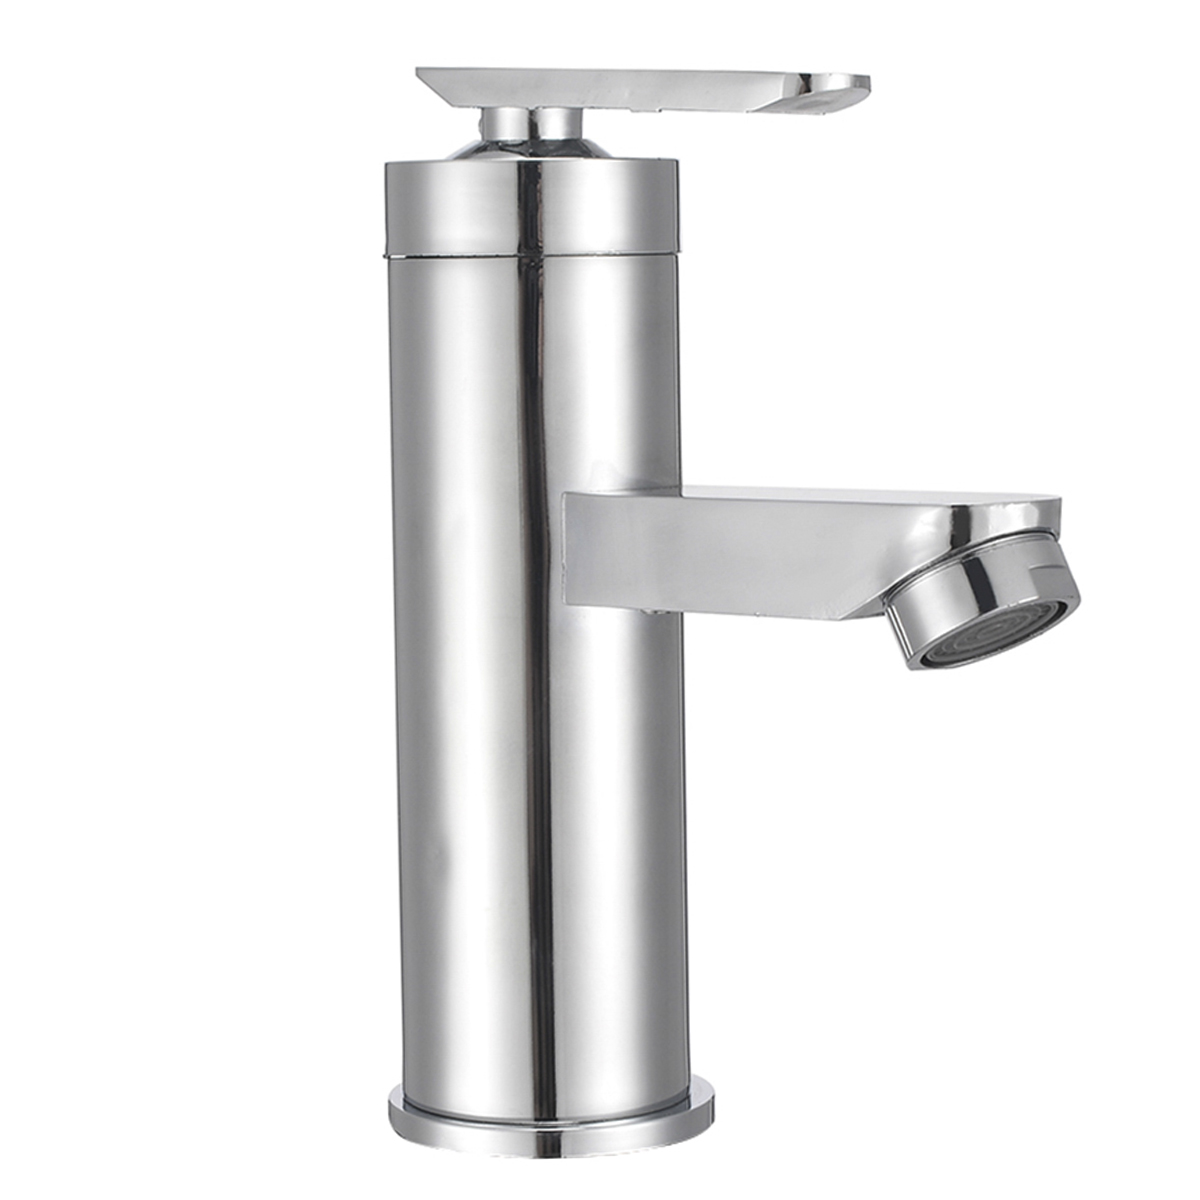 Mayitr Basin Faucets Waterfall Bathroom Faucet Chrome Single Handle Mixer Tap Bath Sink Water Crane For Bathroom Accessories